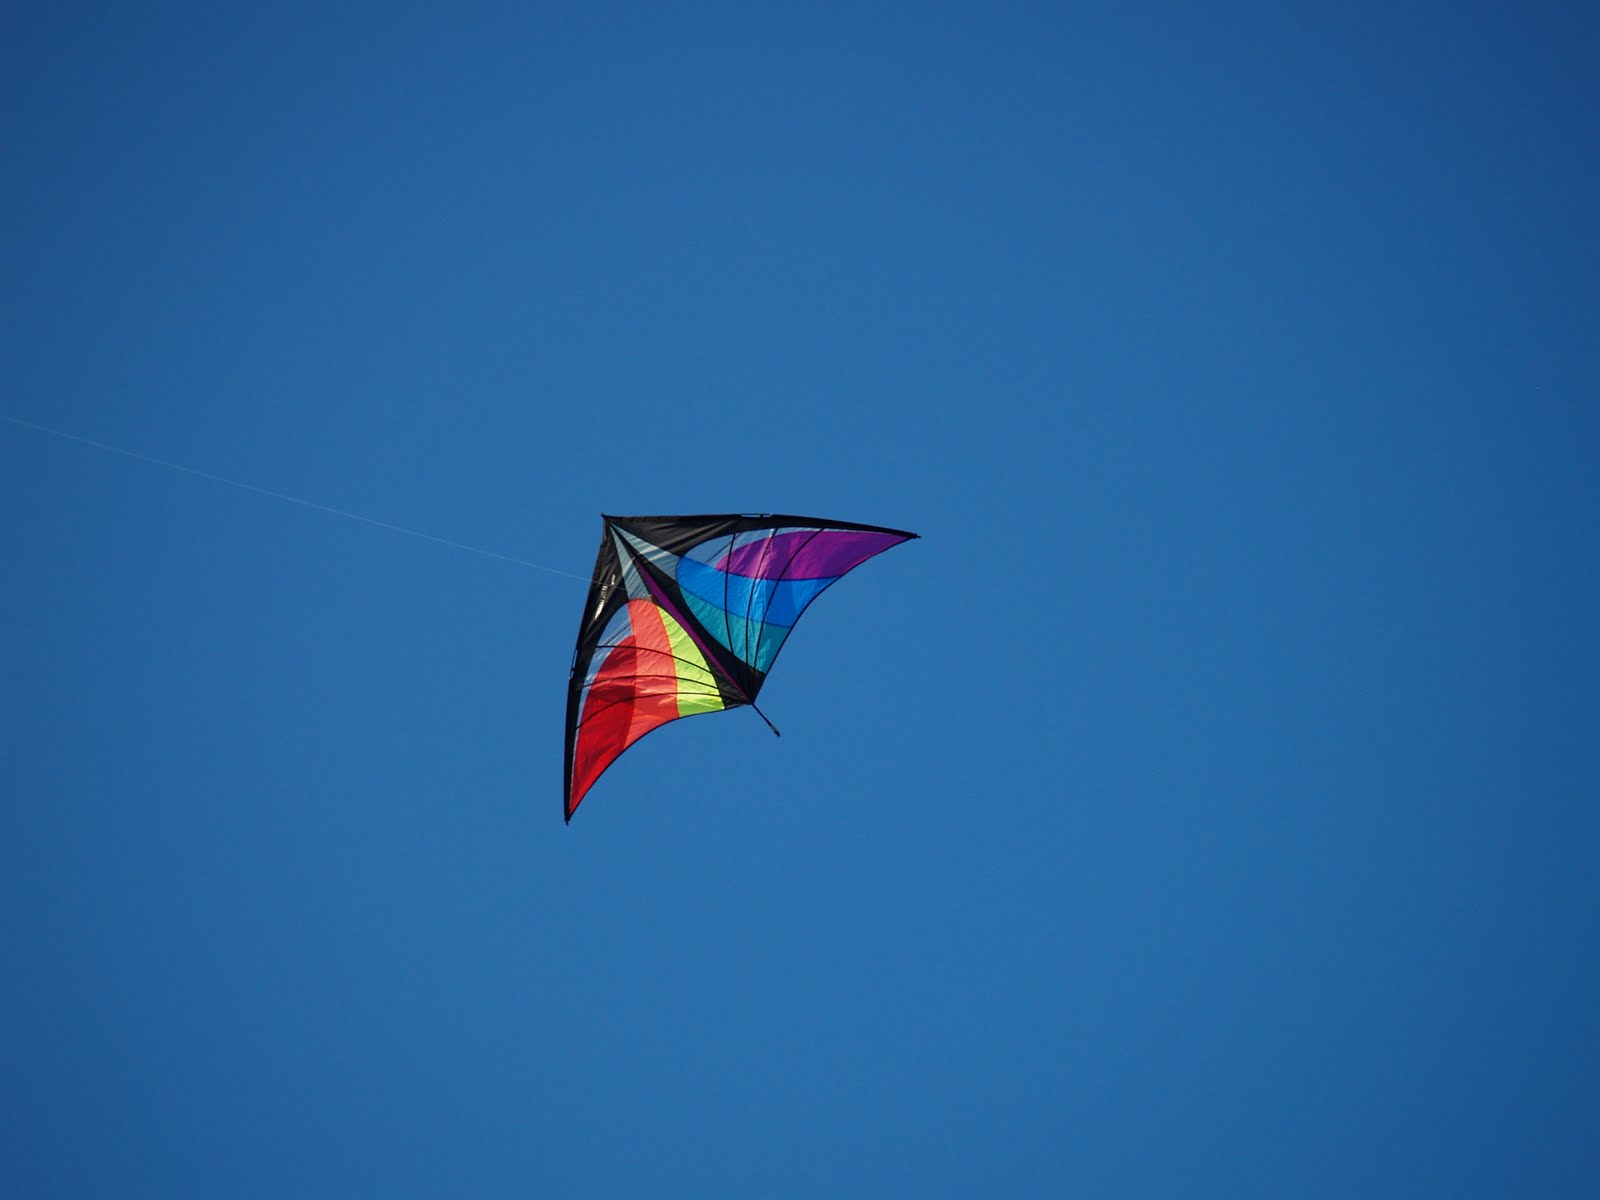 A triangular rainbow kite against a deep blue sky.